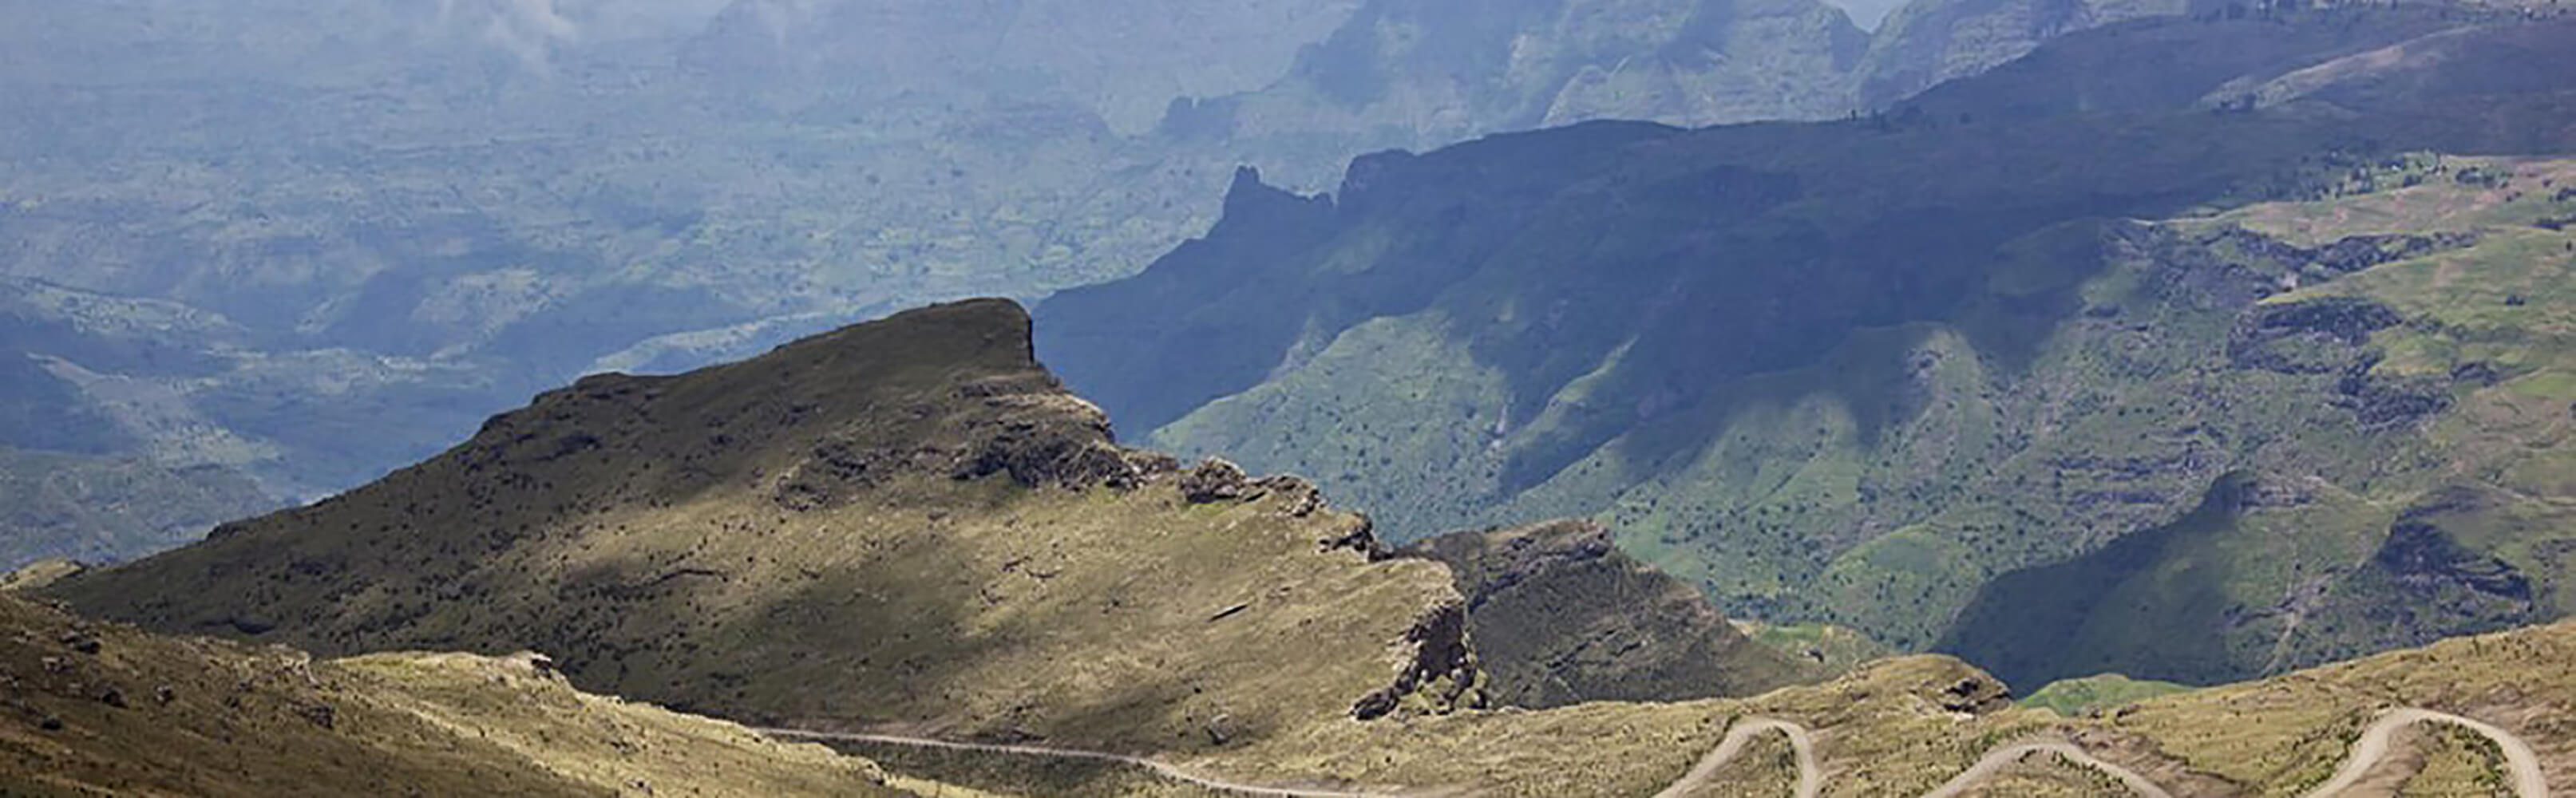 Nationalpark Simien Mountains 1